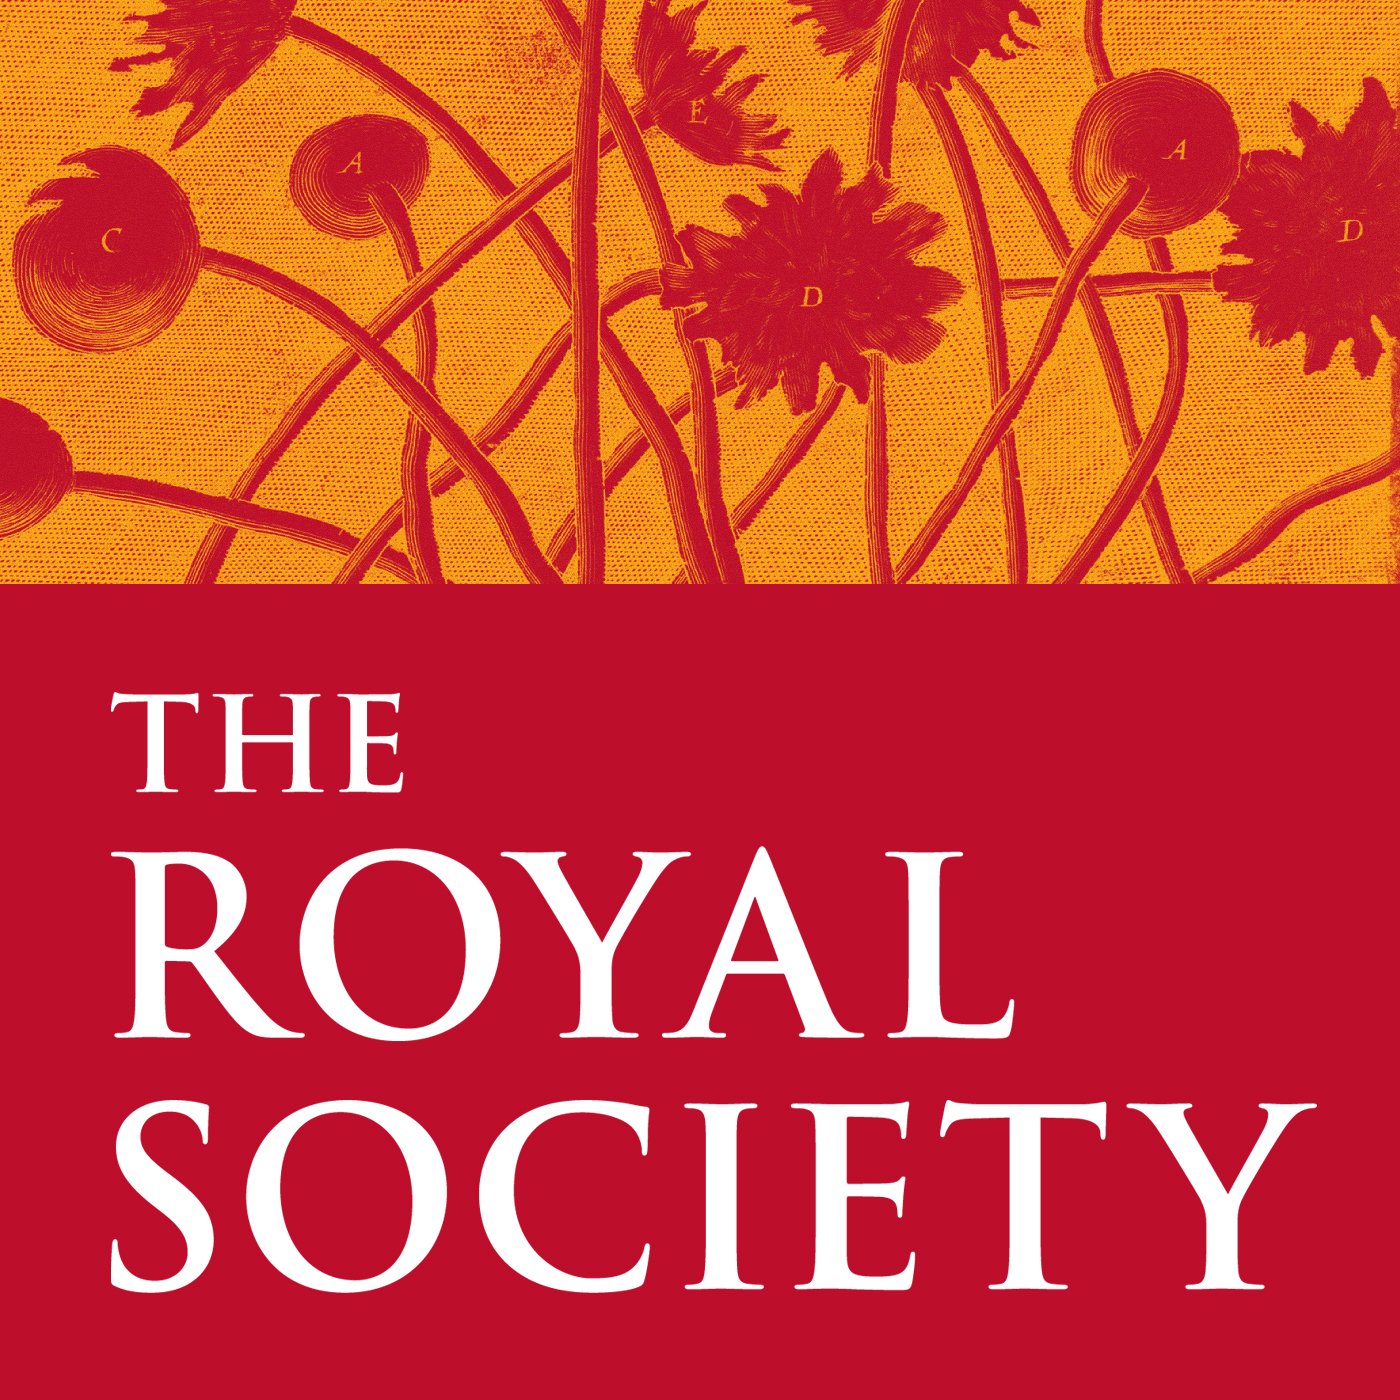 History of science | Royal Society